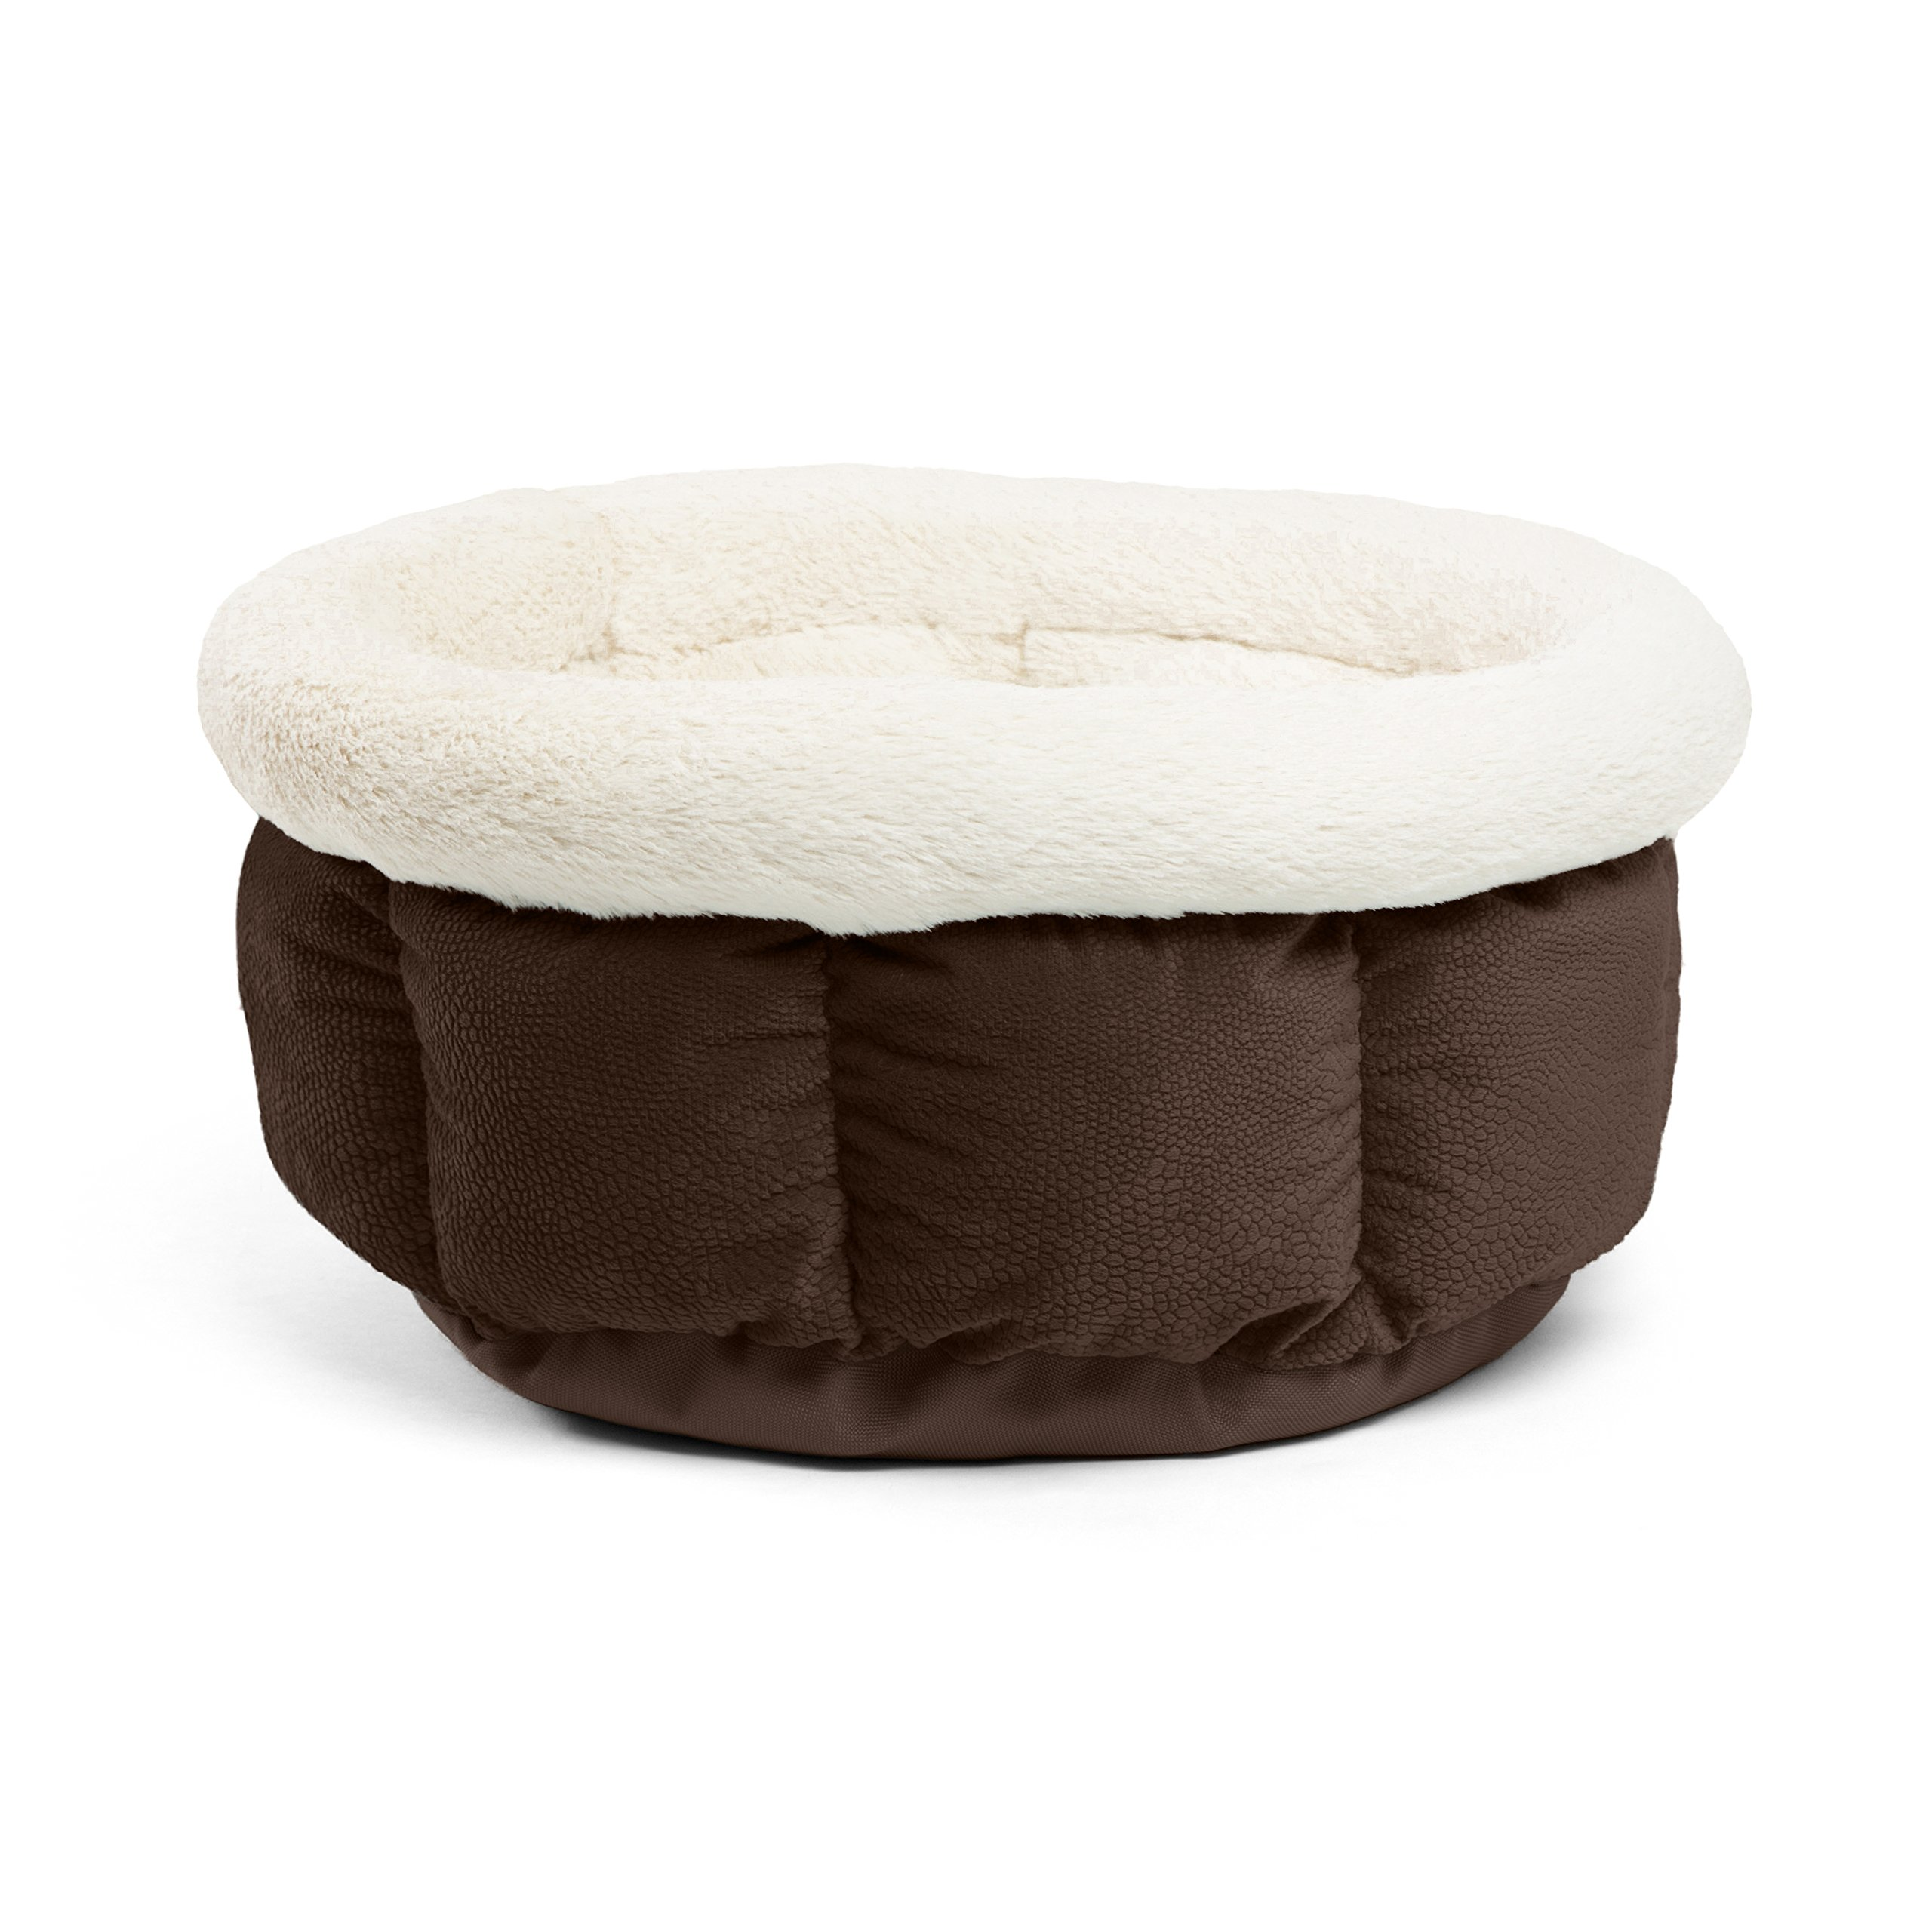 Best Friends by Sheri Small Cuddle Cup - Cozy, Comfortable Cat and Dog House Bed - High-Walls for Improved Sleep, Dark Chocolate by Best Friends by Sheri (Image #4)